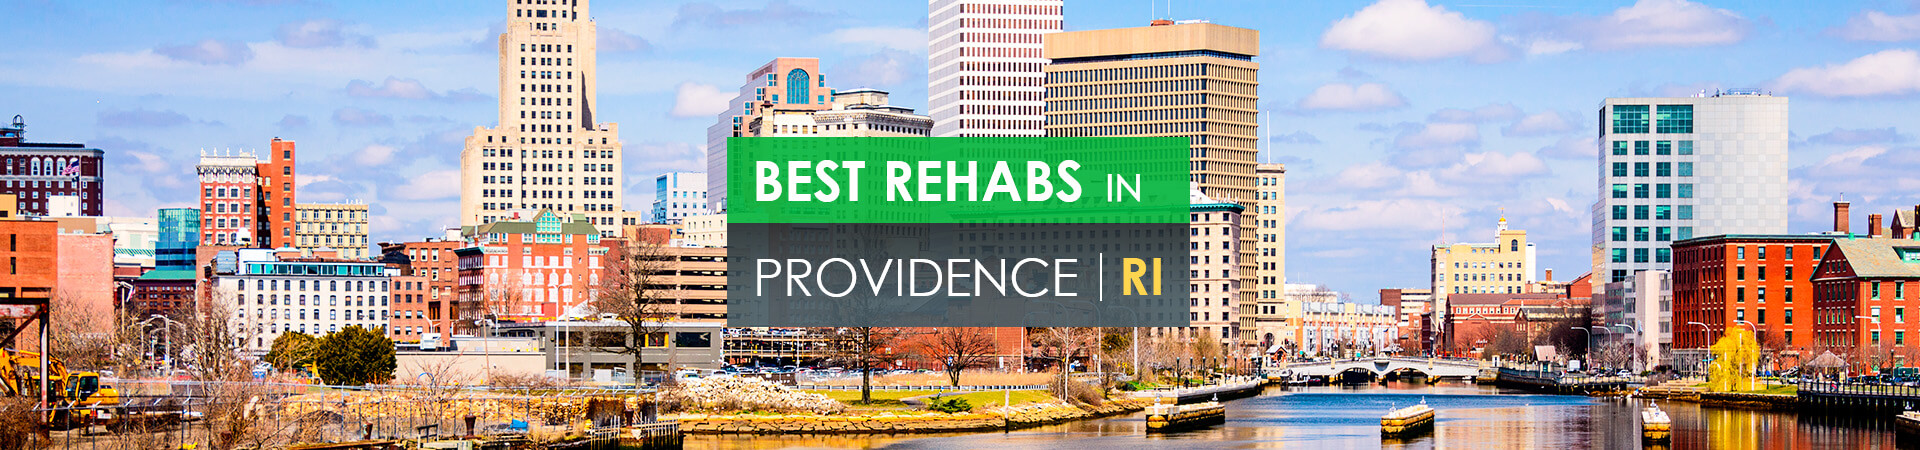 Best rehabs in Providence, RI